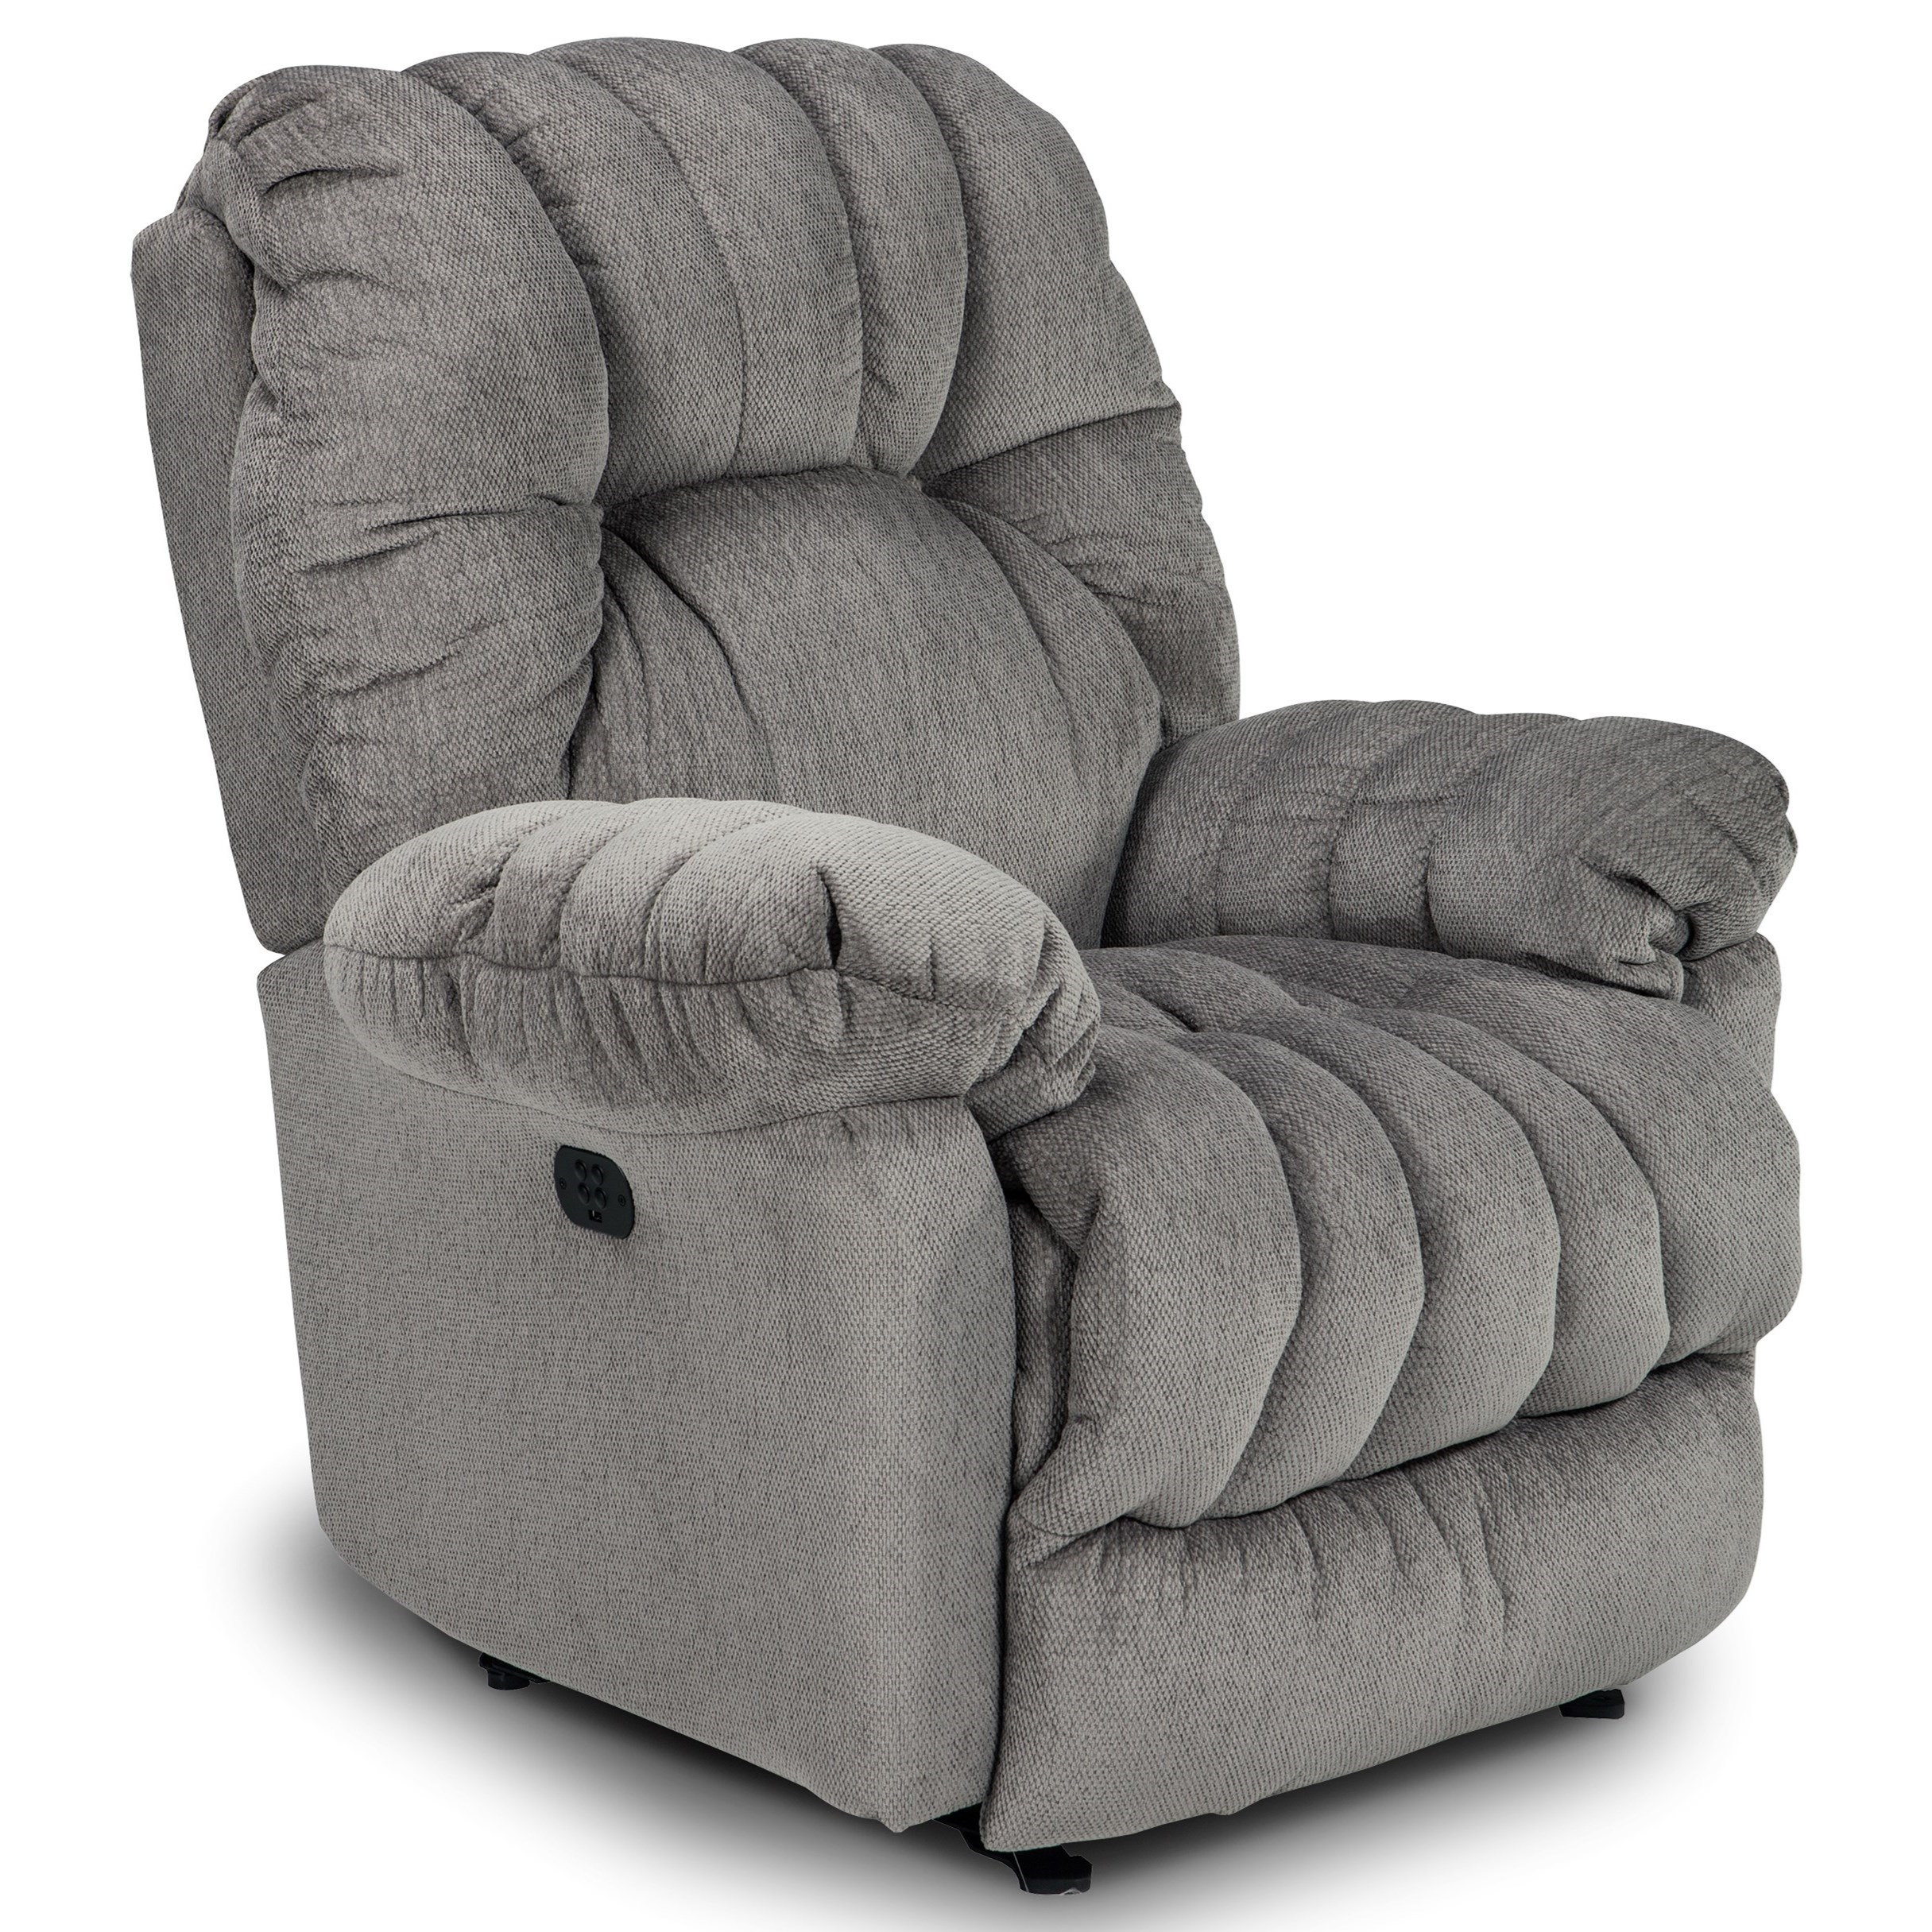 Conen Swivel Rocking Reclining Chair By Best Home